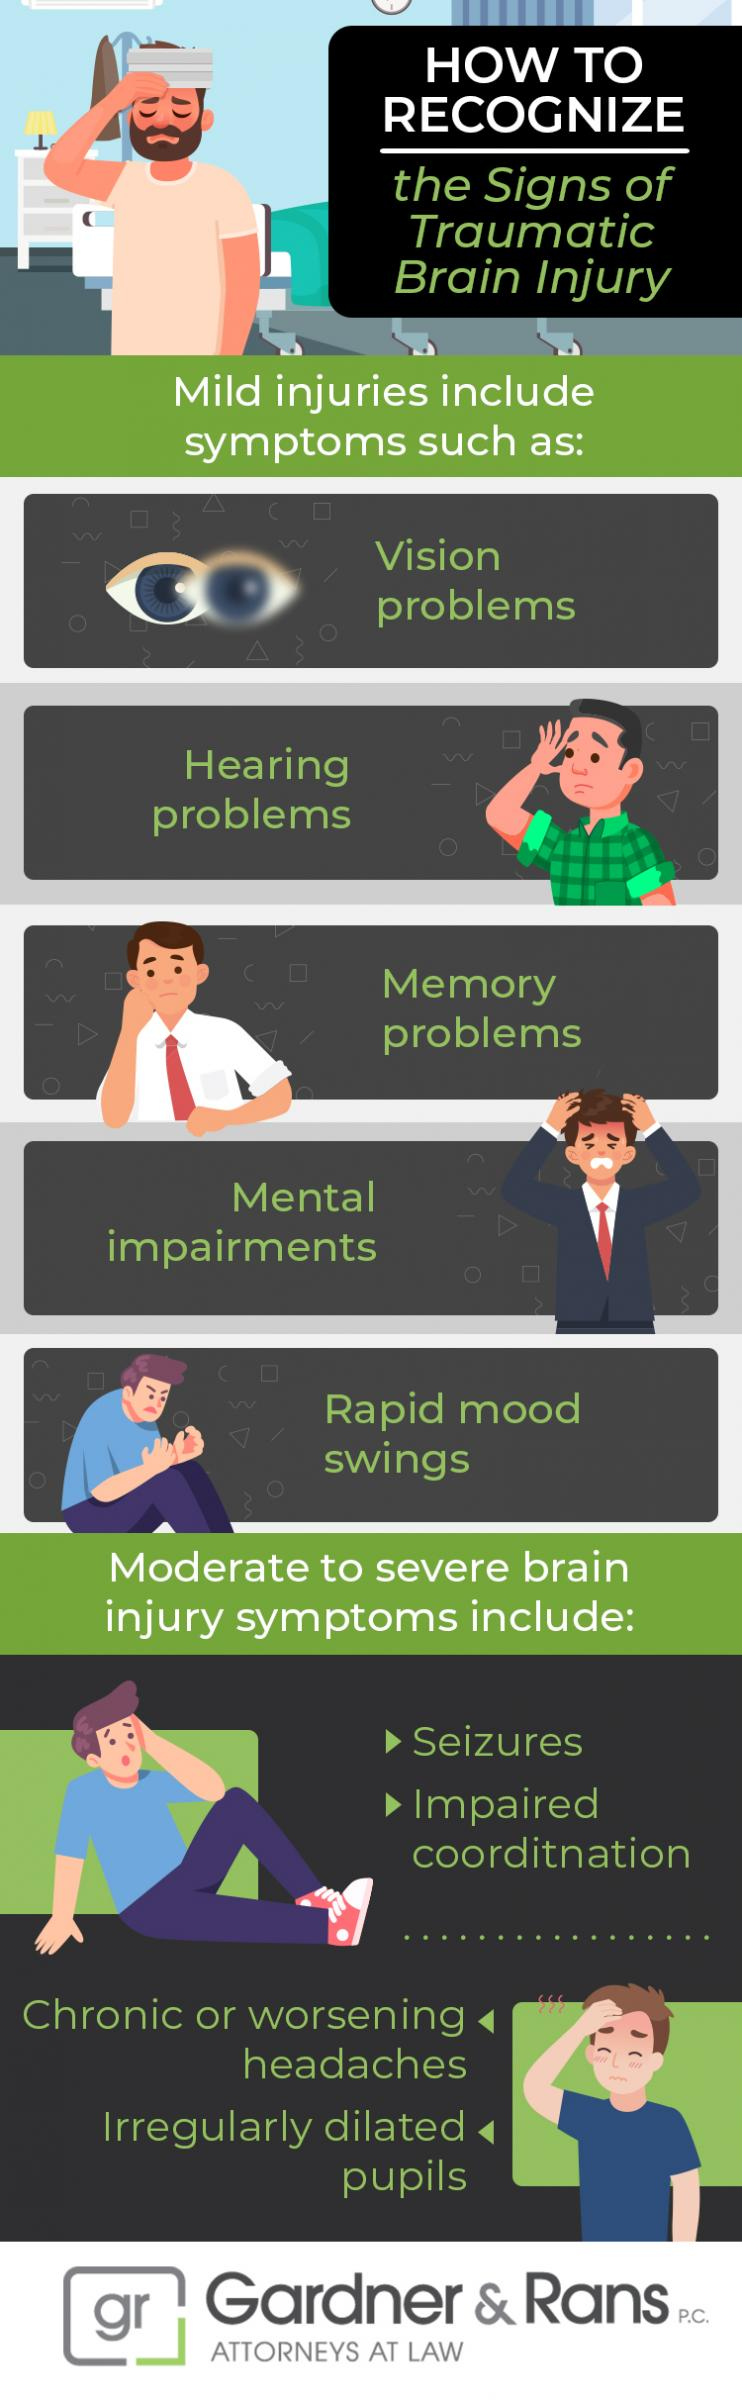 Infographic: How to recognize signs of traumatic brain injury